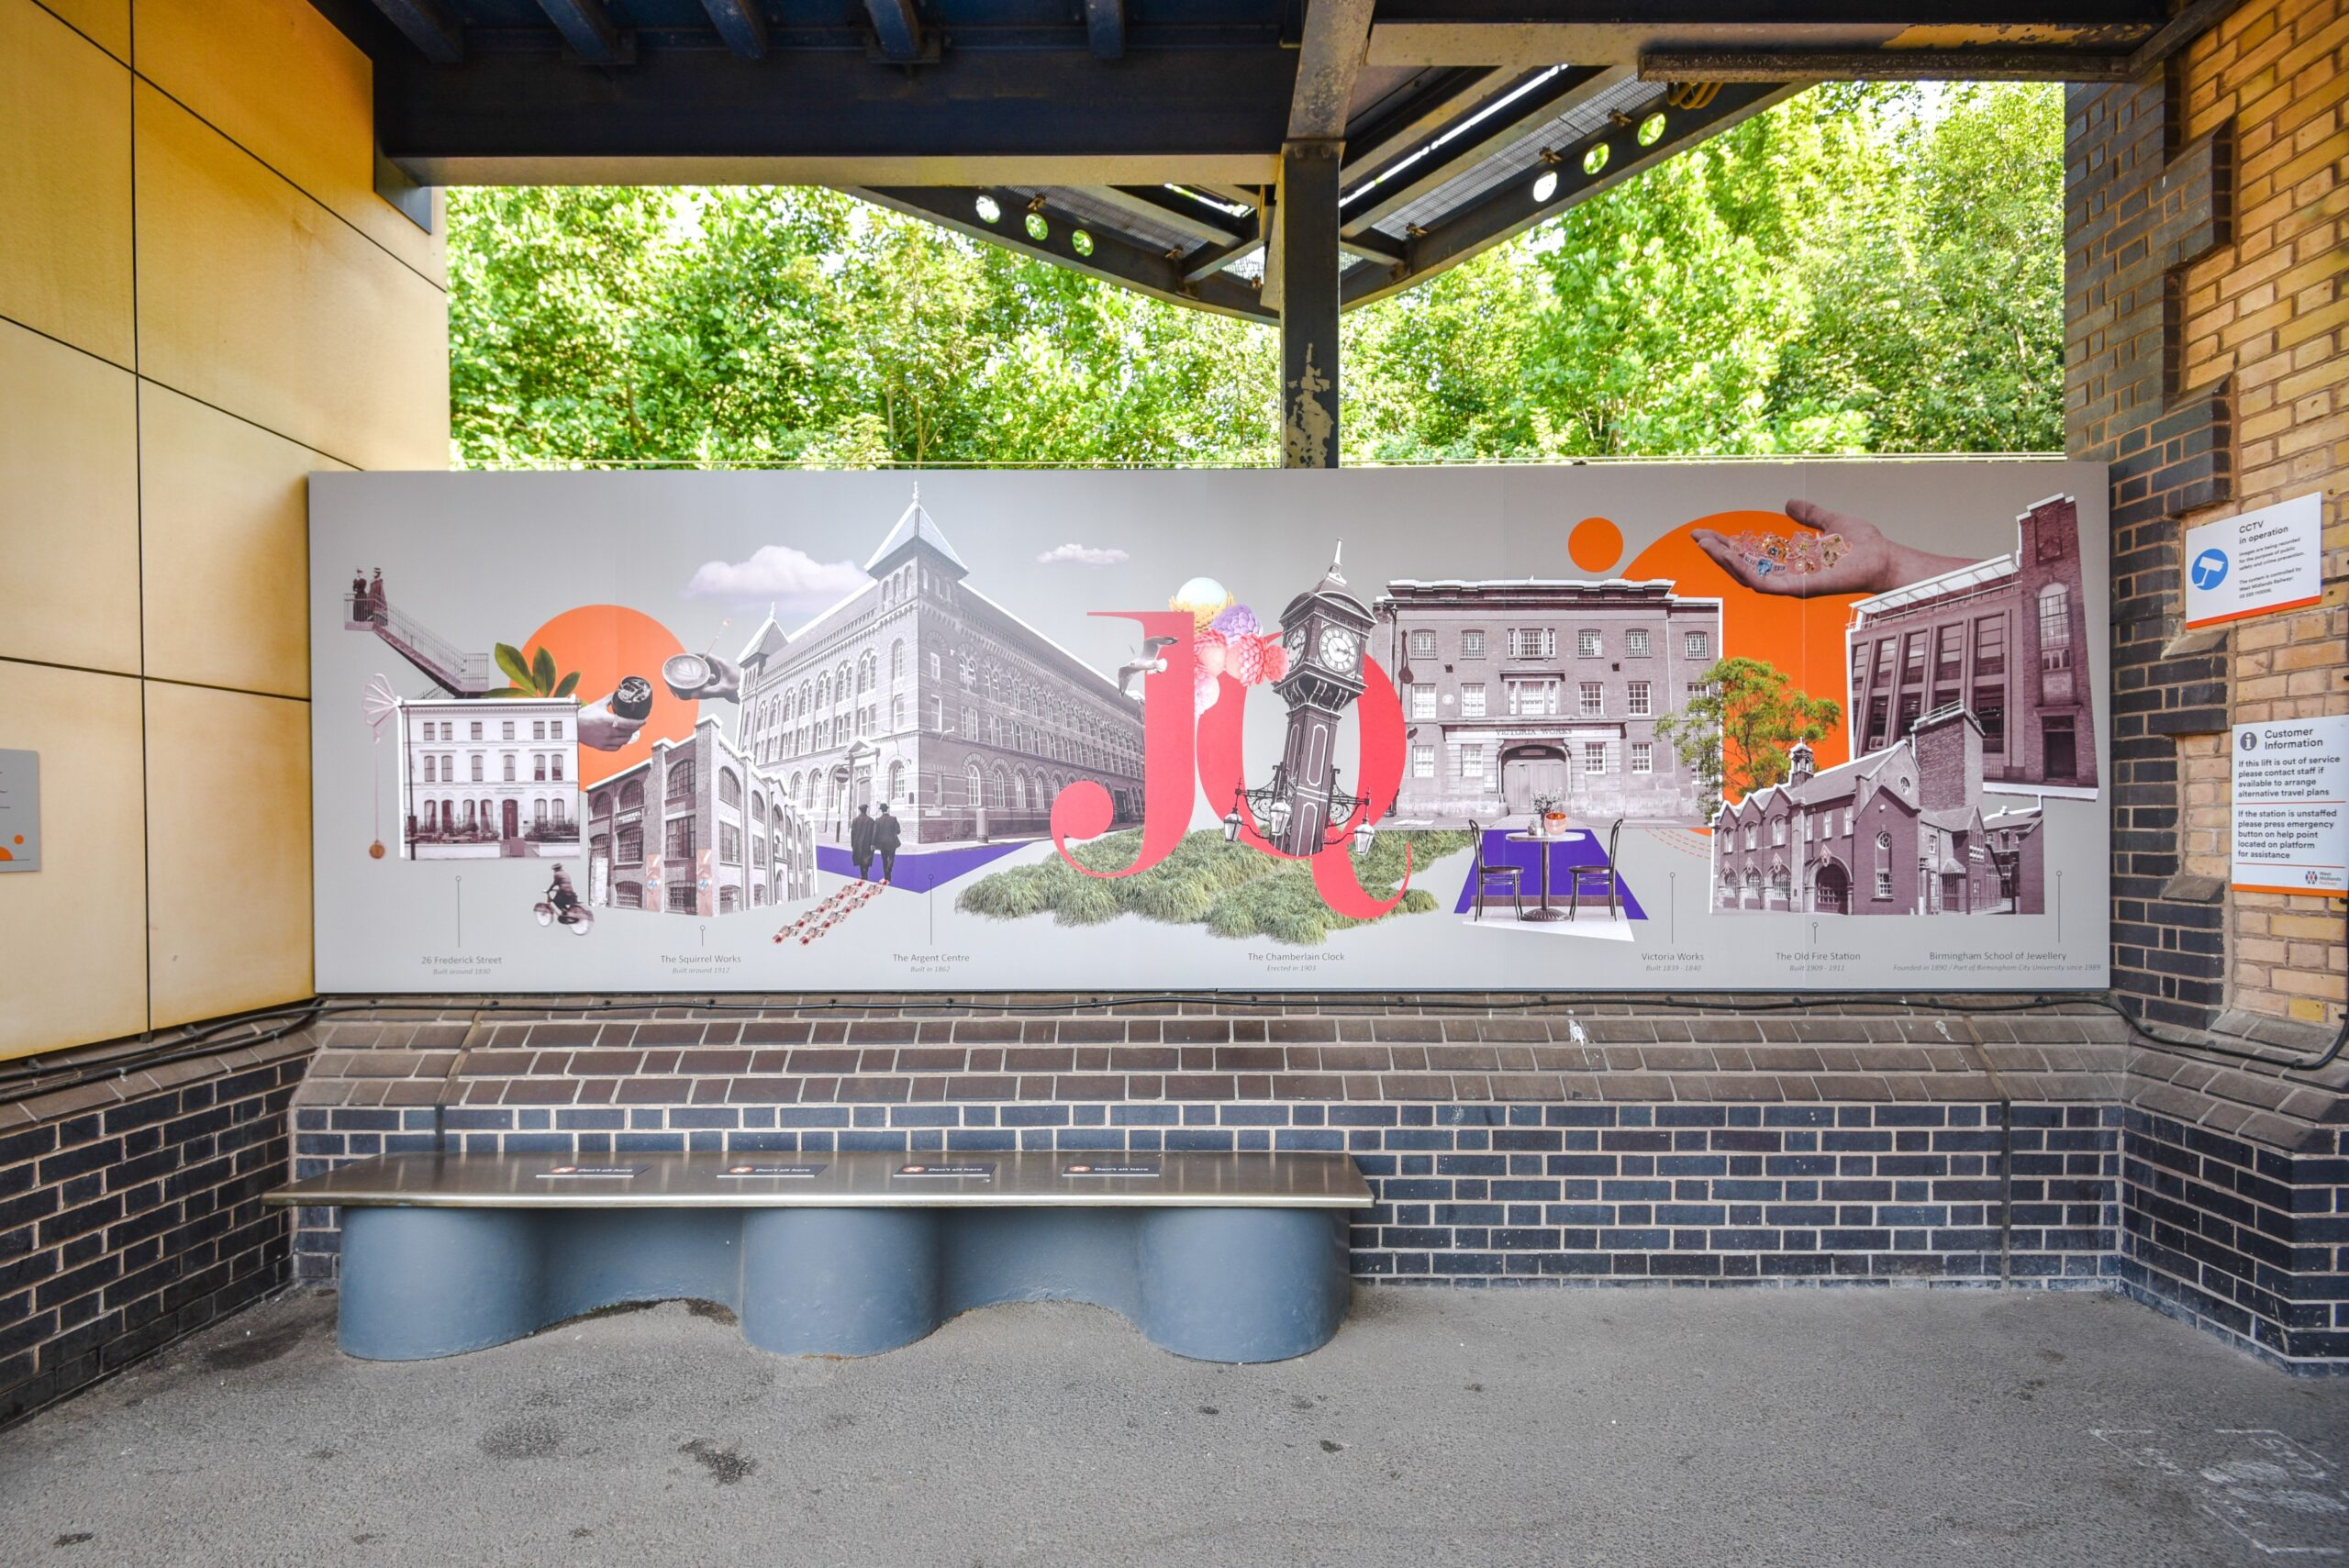 The artwork was commissioned by the JQTH as part of the JQBID's Adopt a Station project